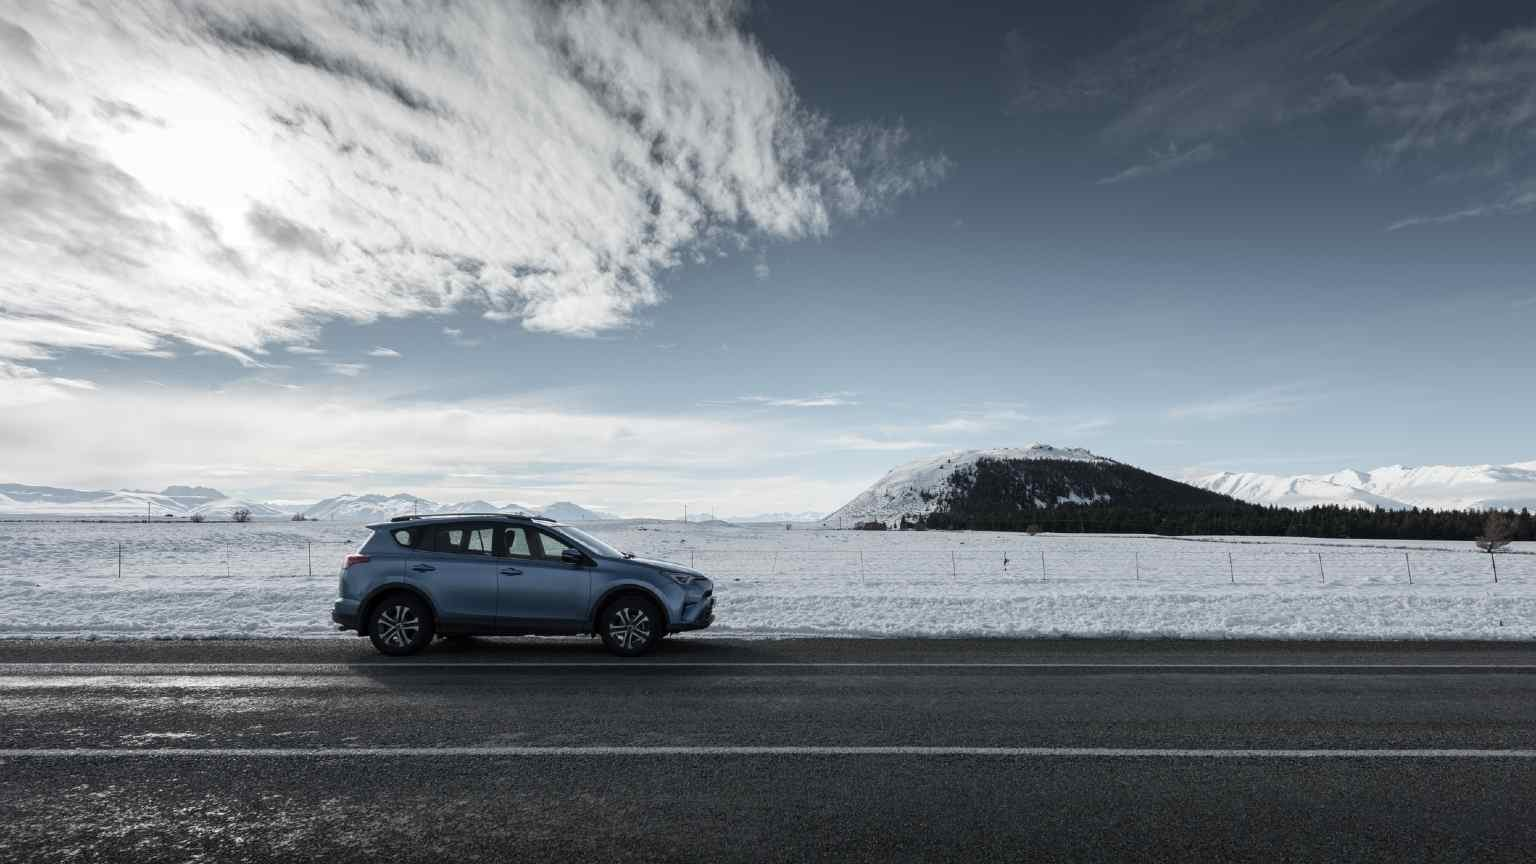 Car against snowy New Zealand backdrop